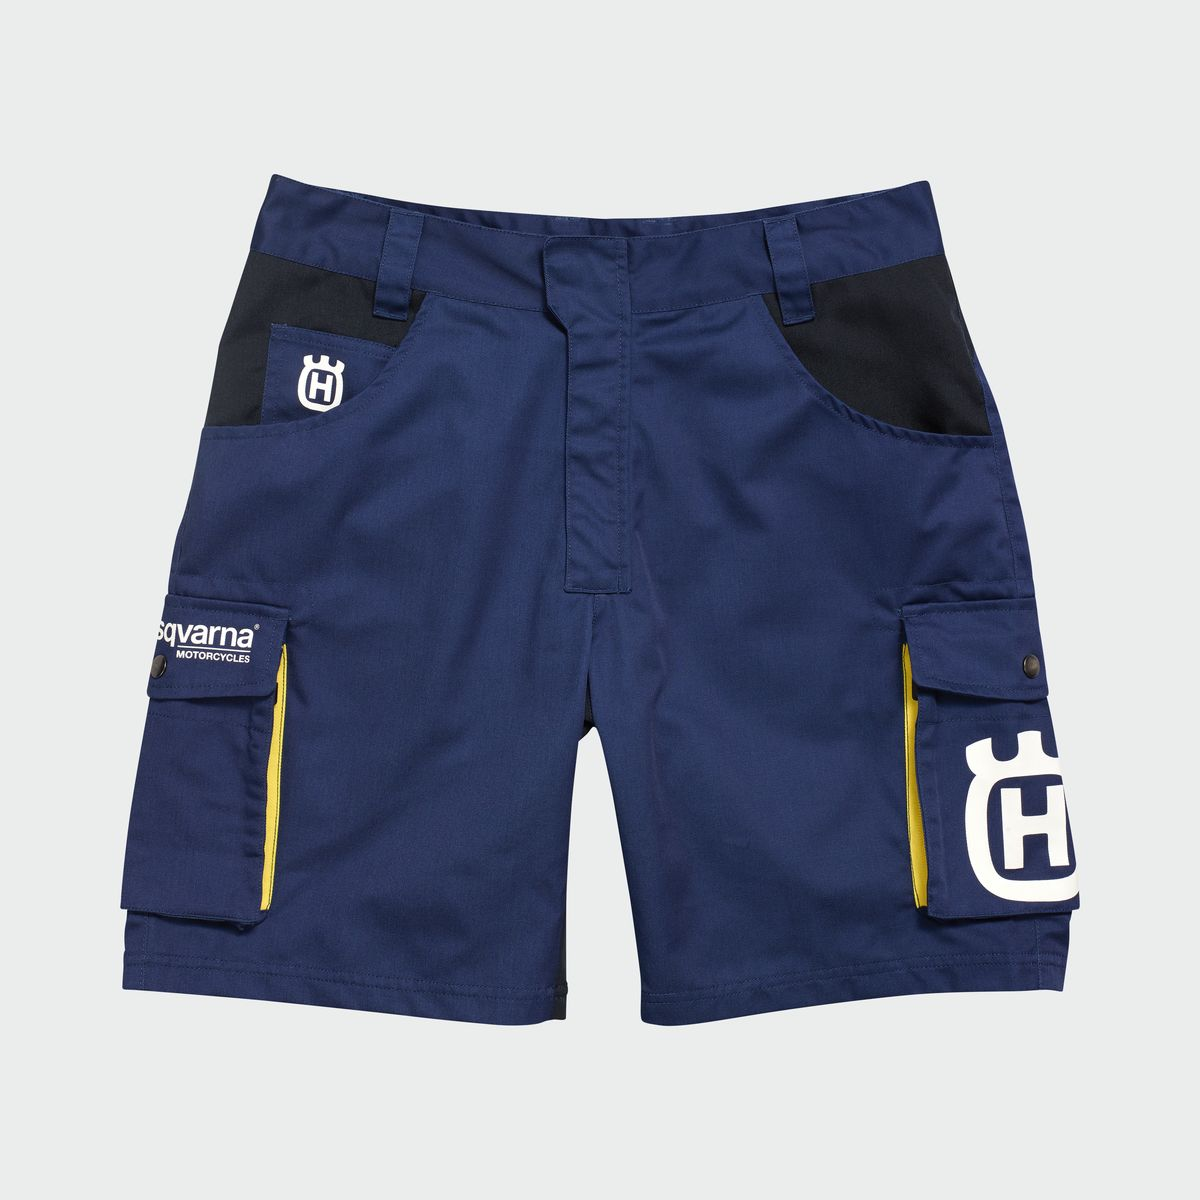 OFICIAL TEAM SHORTS 0